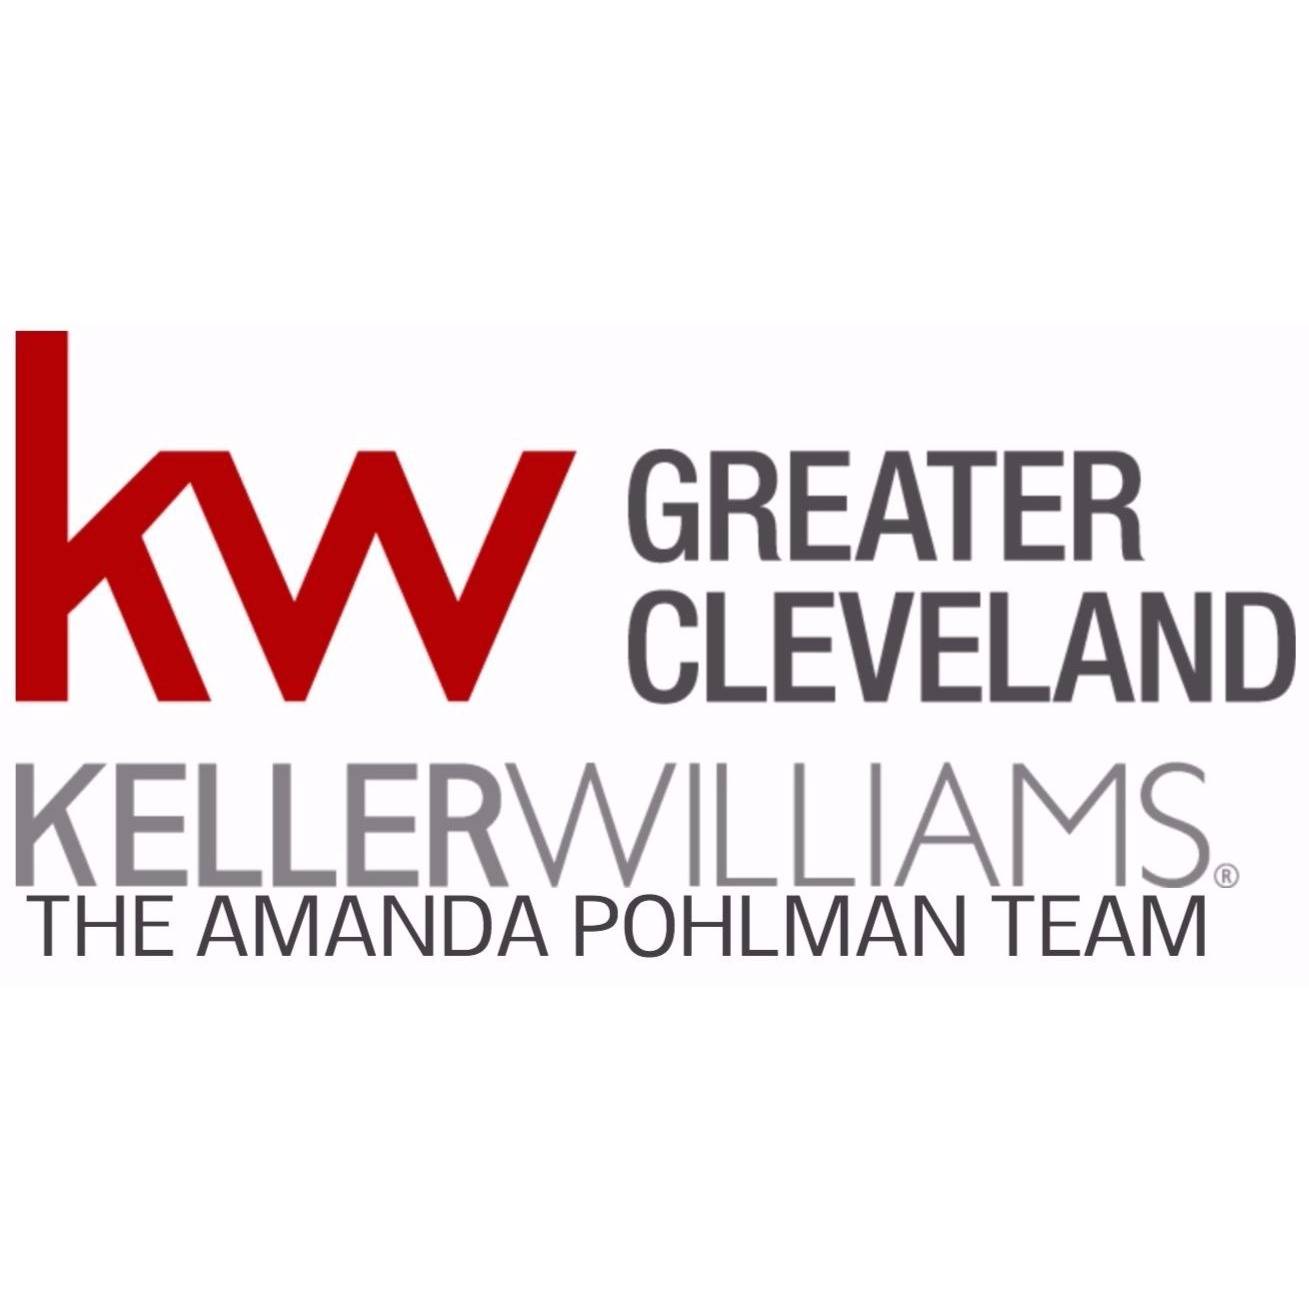 The Amanda Pohlman Team at Keller Williams Greater Cleveland